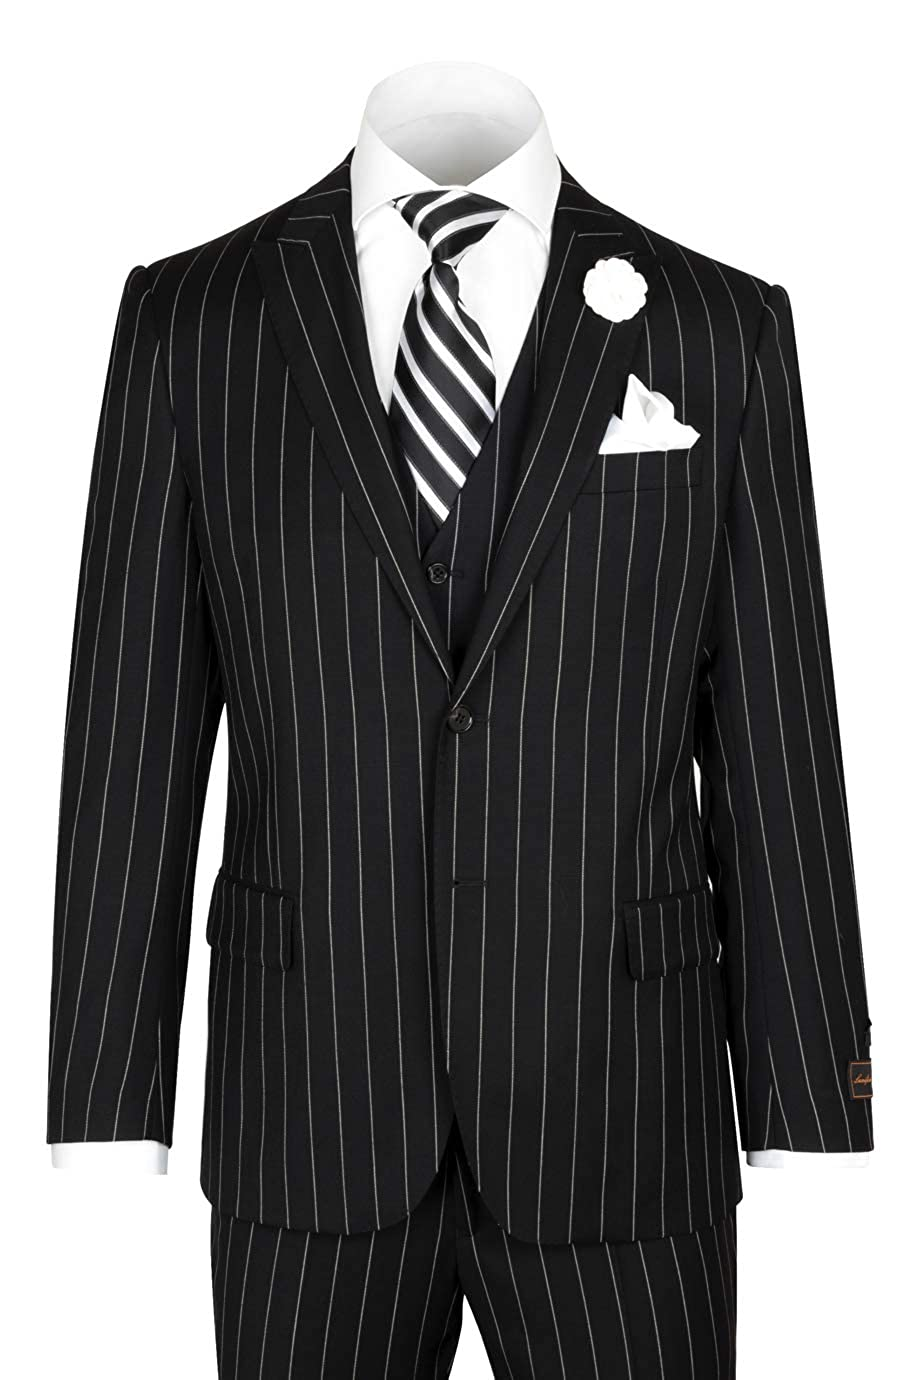 1920s Fashion for Men Tiglio Luxe Tufo Modern Fit Black Pin-Stripe Pure Wool Suit & Vest TIG1052 $399.00 AT vintagedancer.com